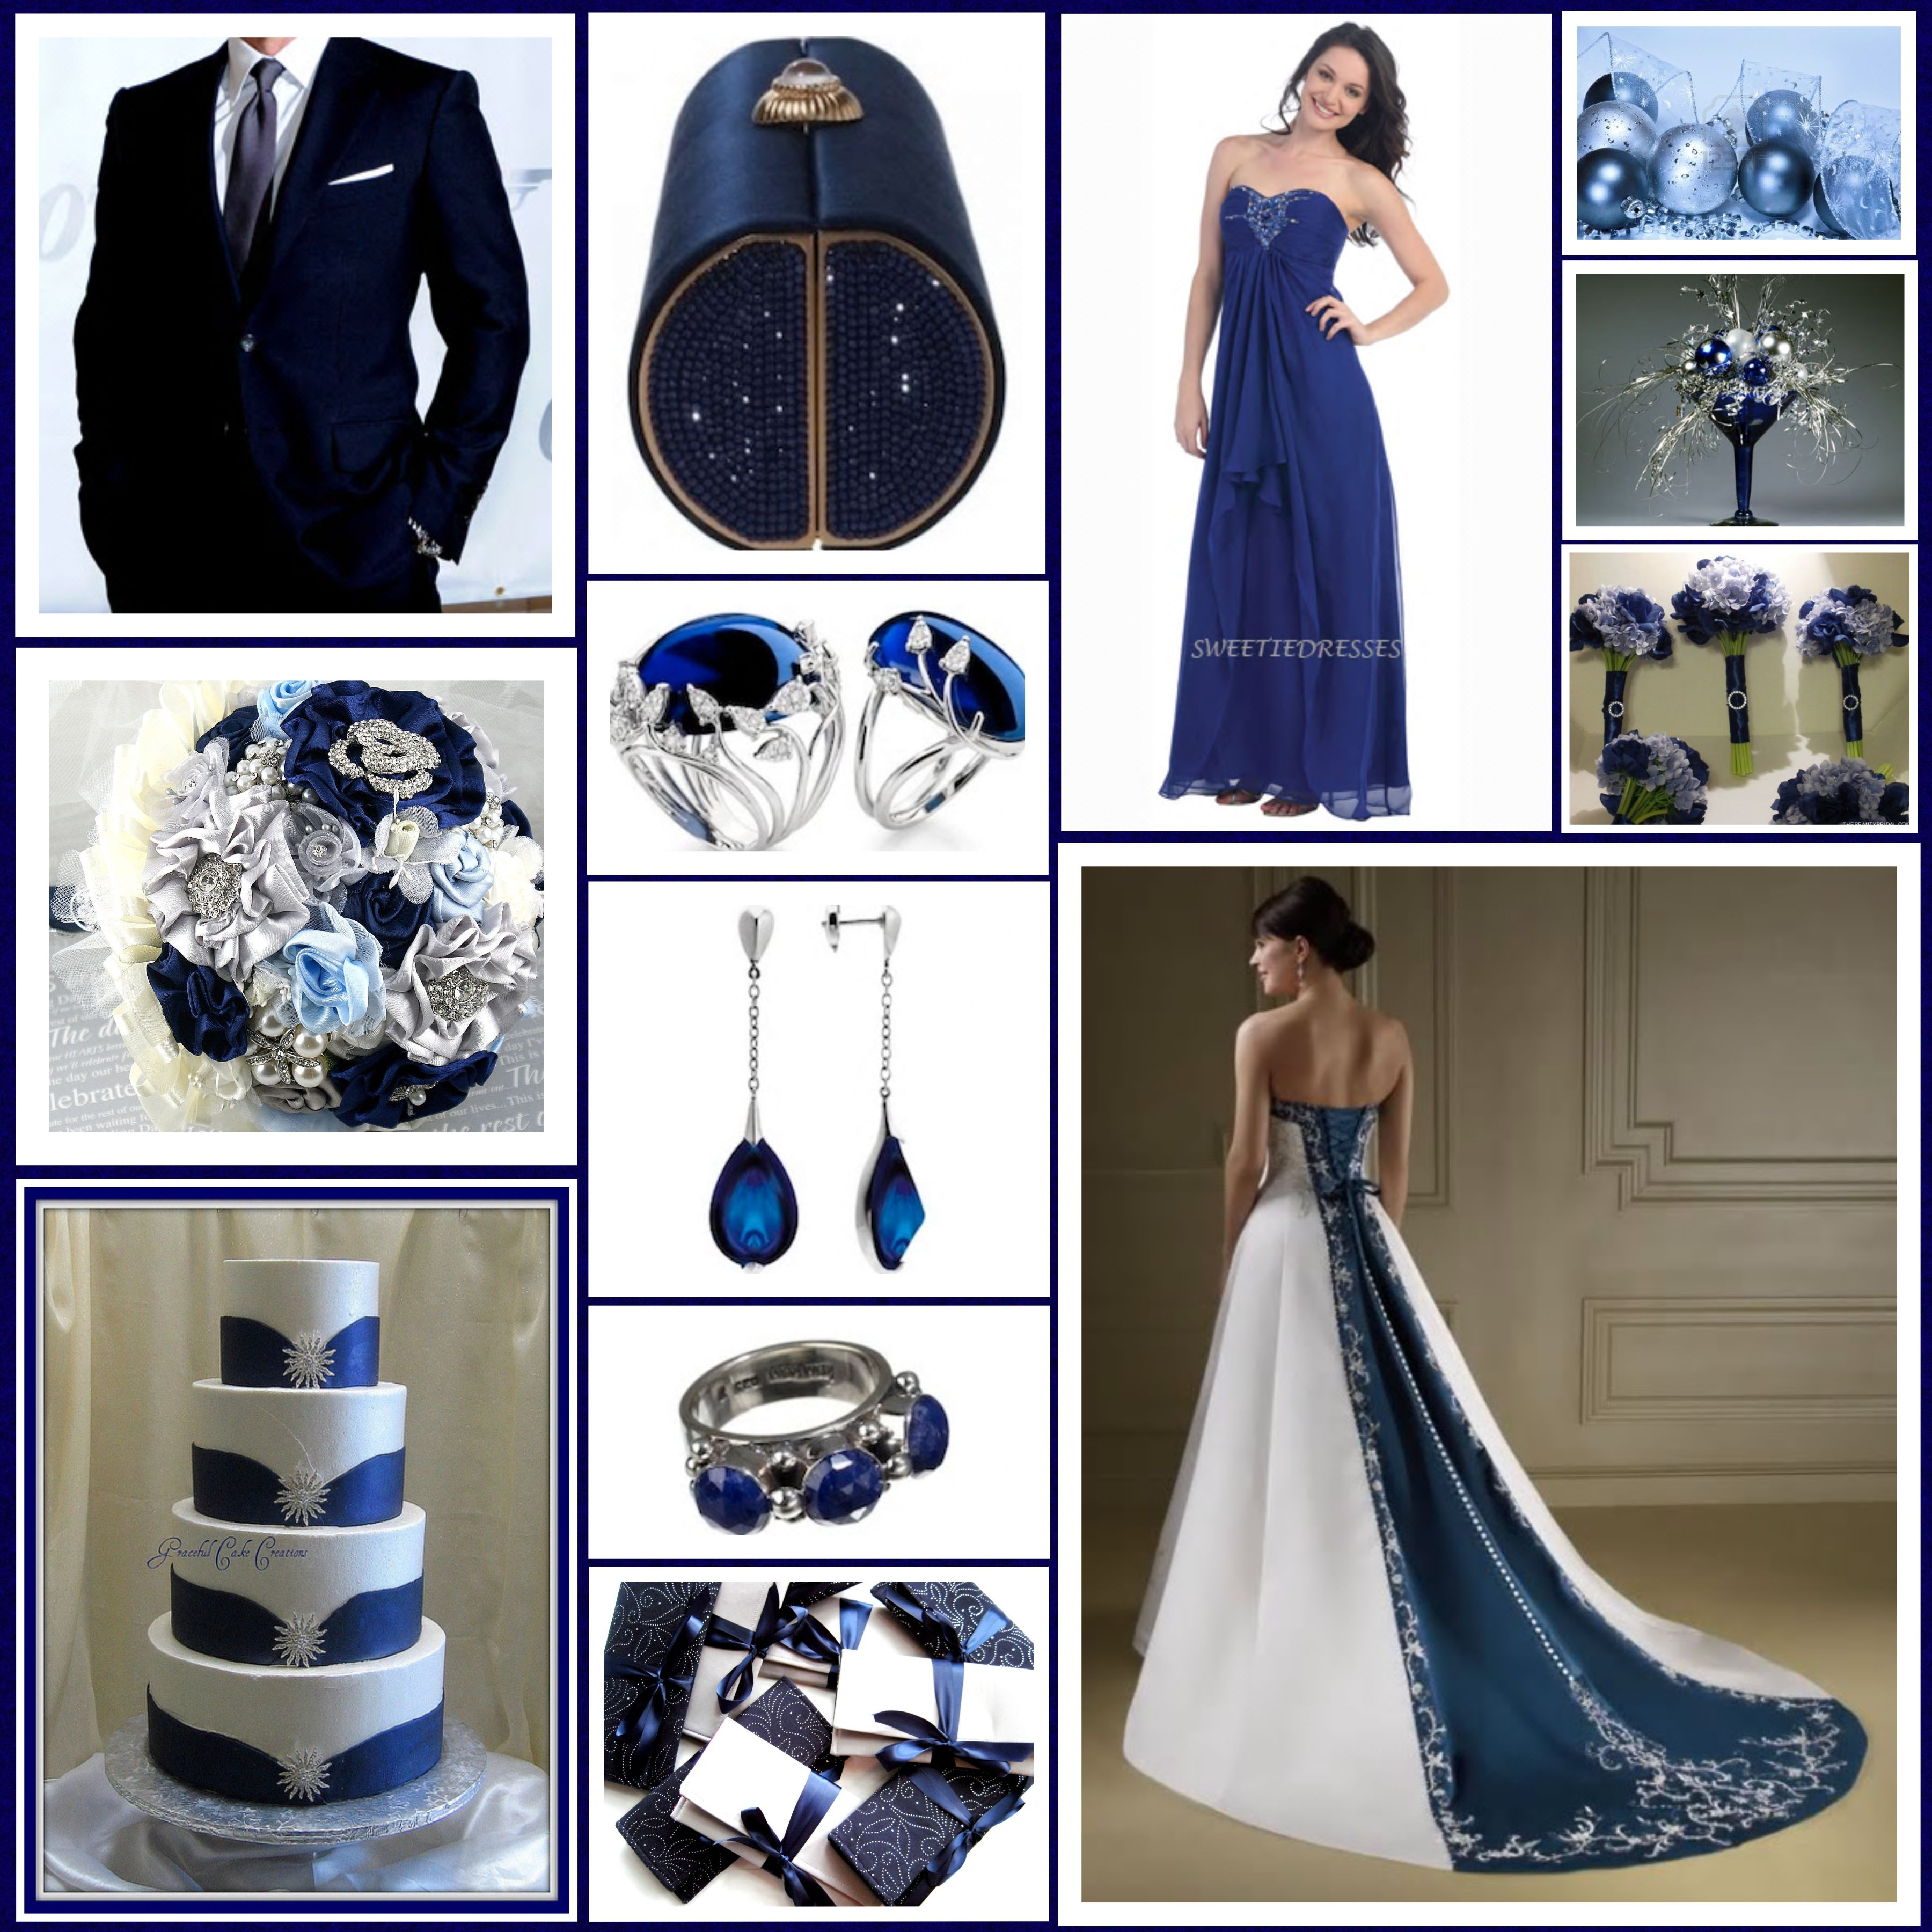 Navy Blue, Silver and Ivory Wedding Palette close to what i want but no blue ball and bride maid dresses are short